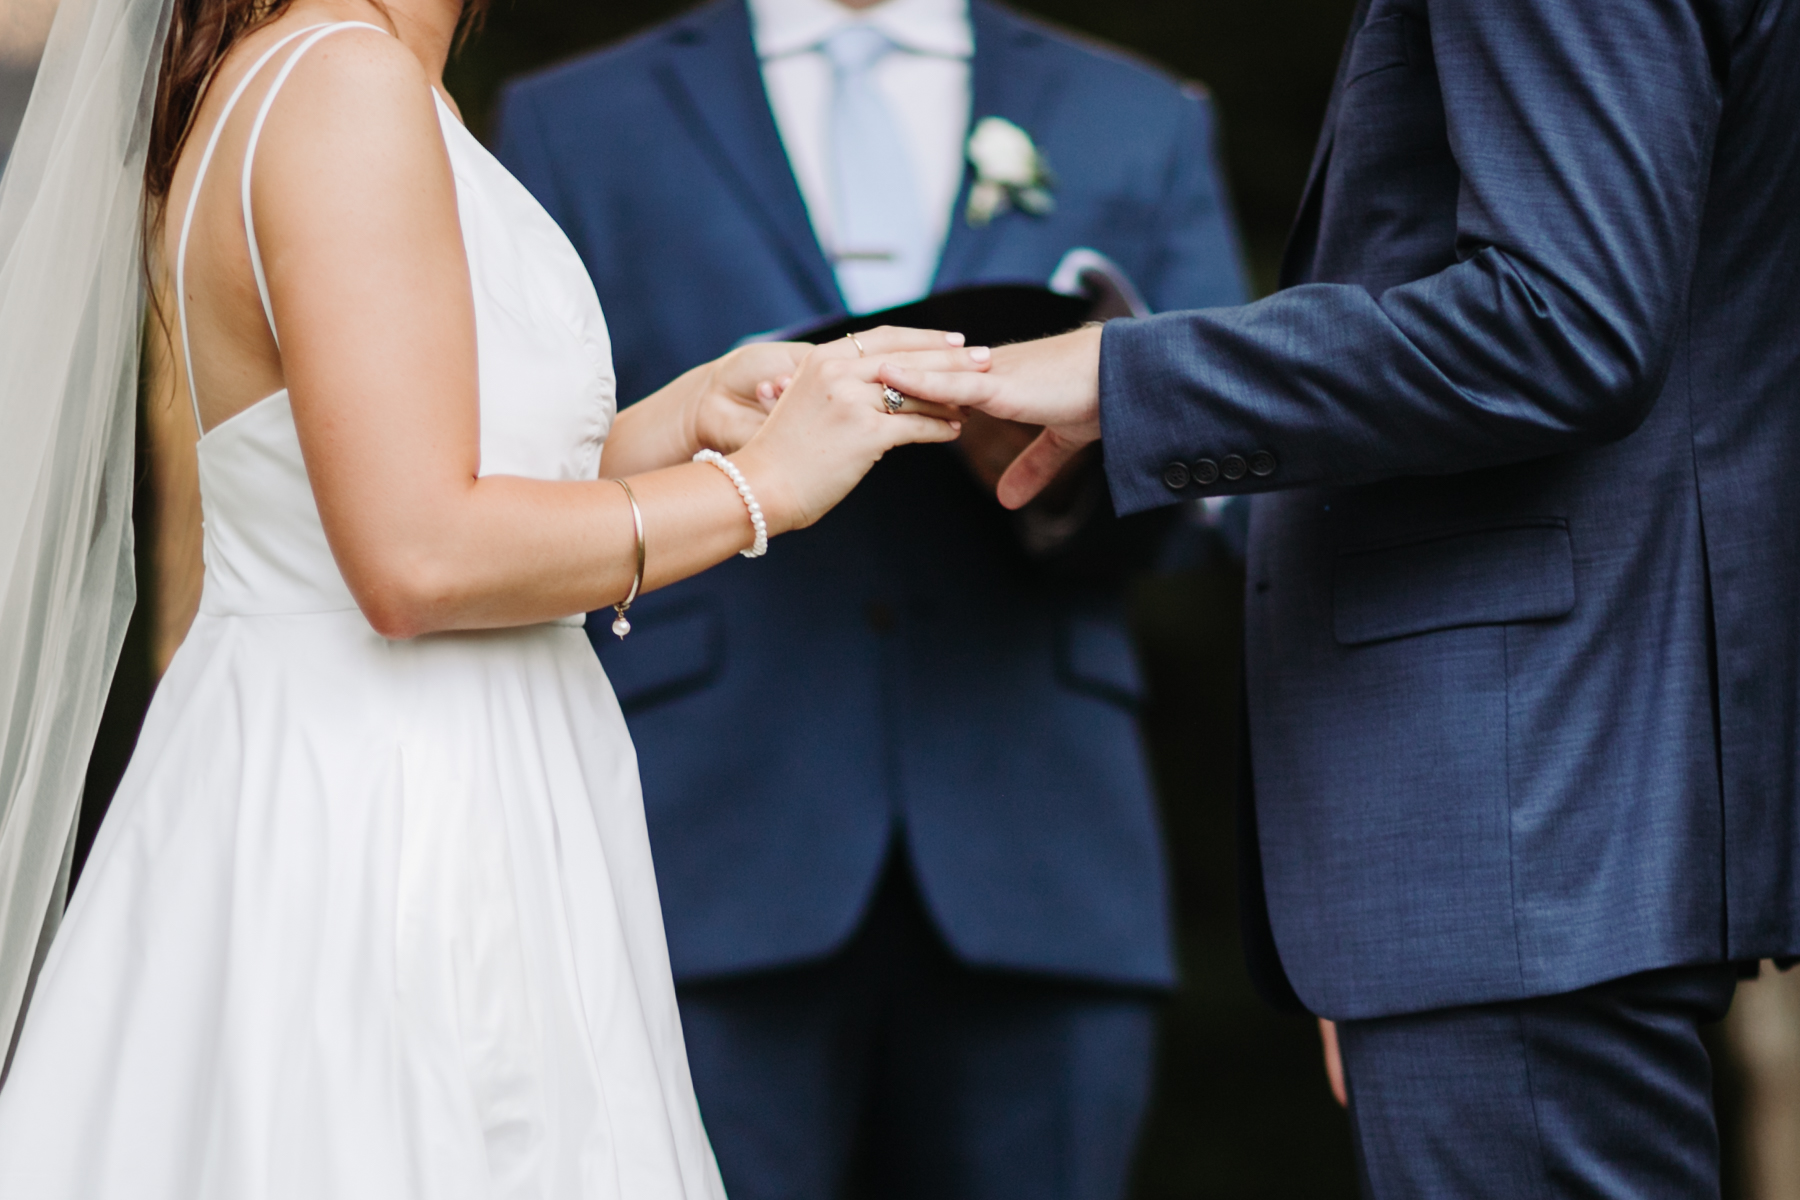 Bride and groom exchanging rings at a Sunny summer wedding at Dara's Garden in Knoxville, Tennessee